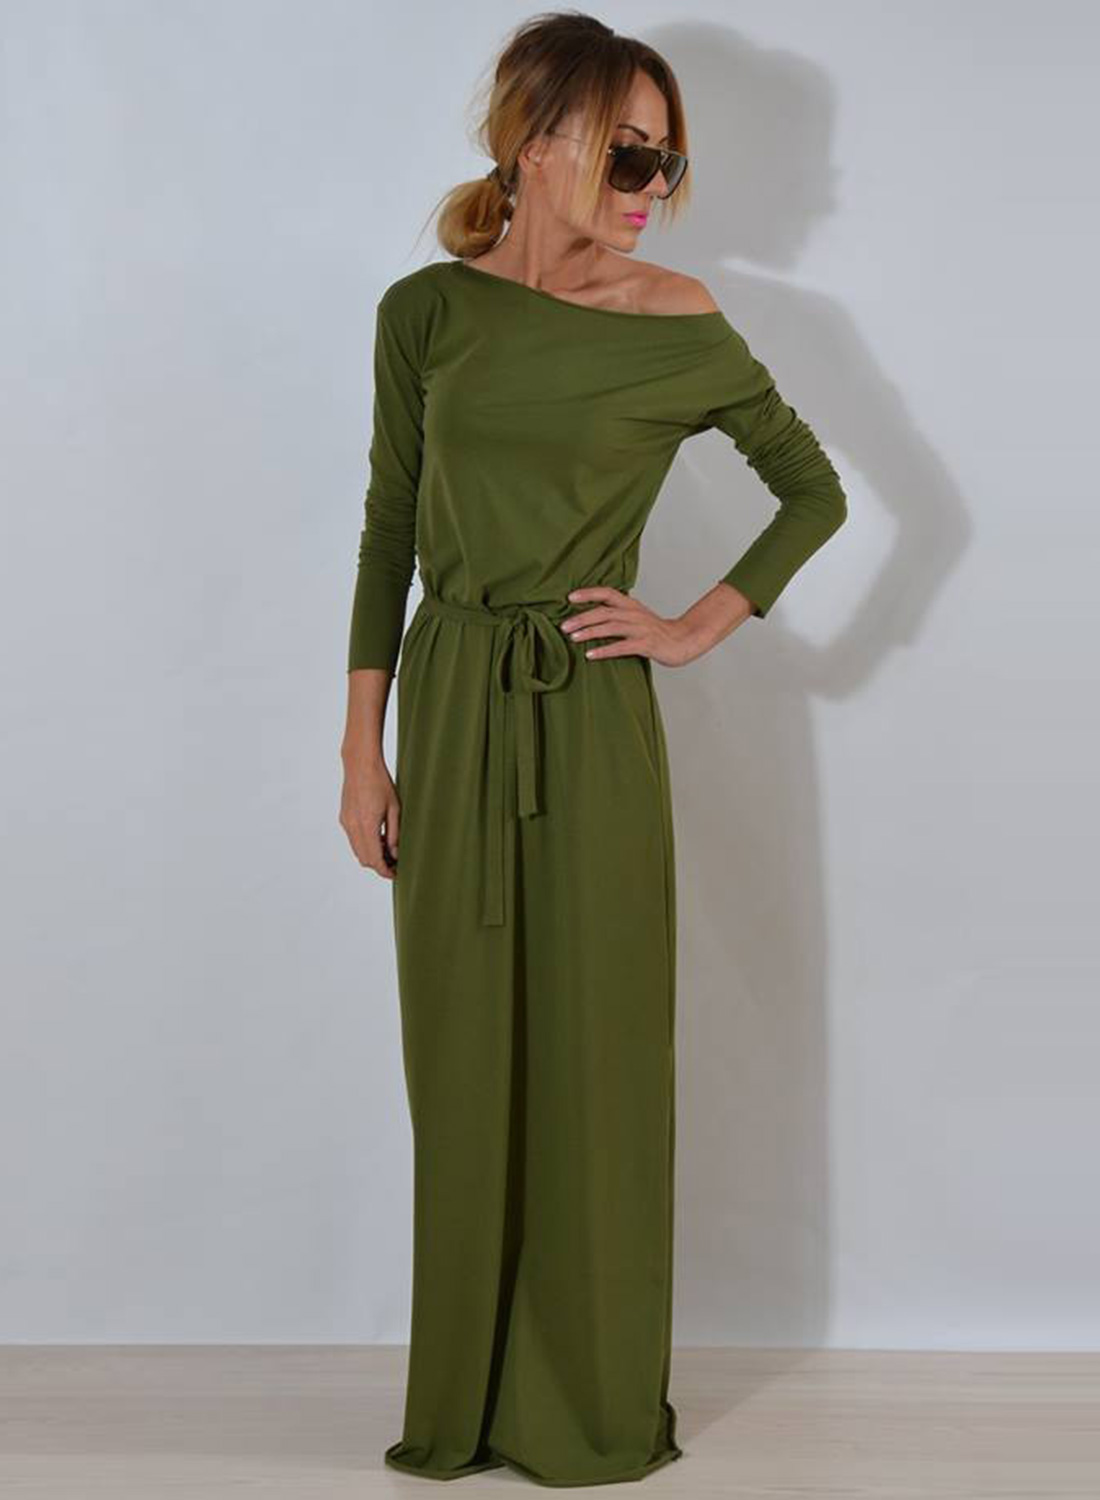 132bf012378 One Shoulder Maxi Dress with Belt STYLESIMO.com. Loading zoom